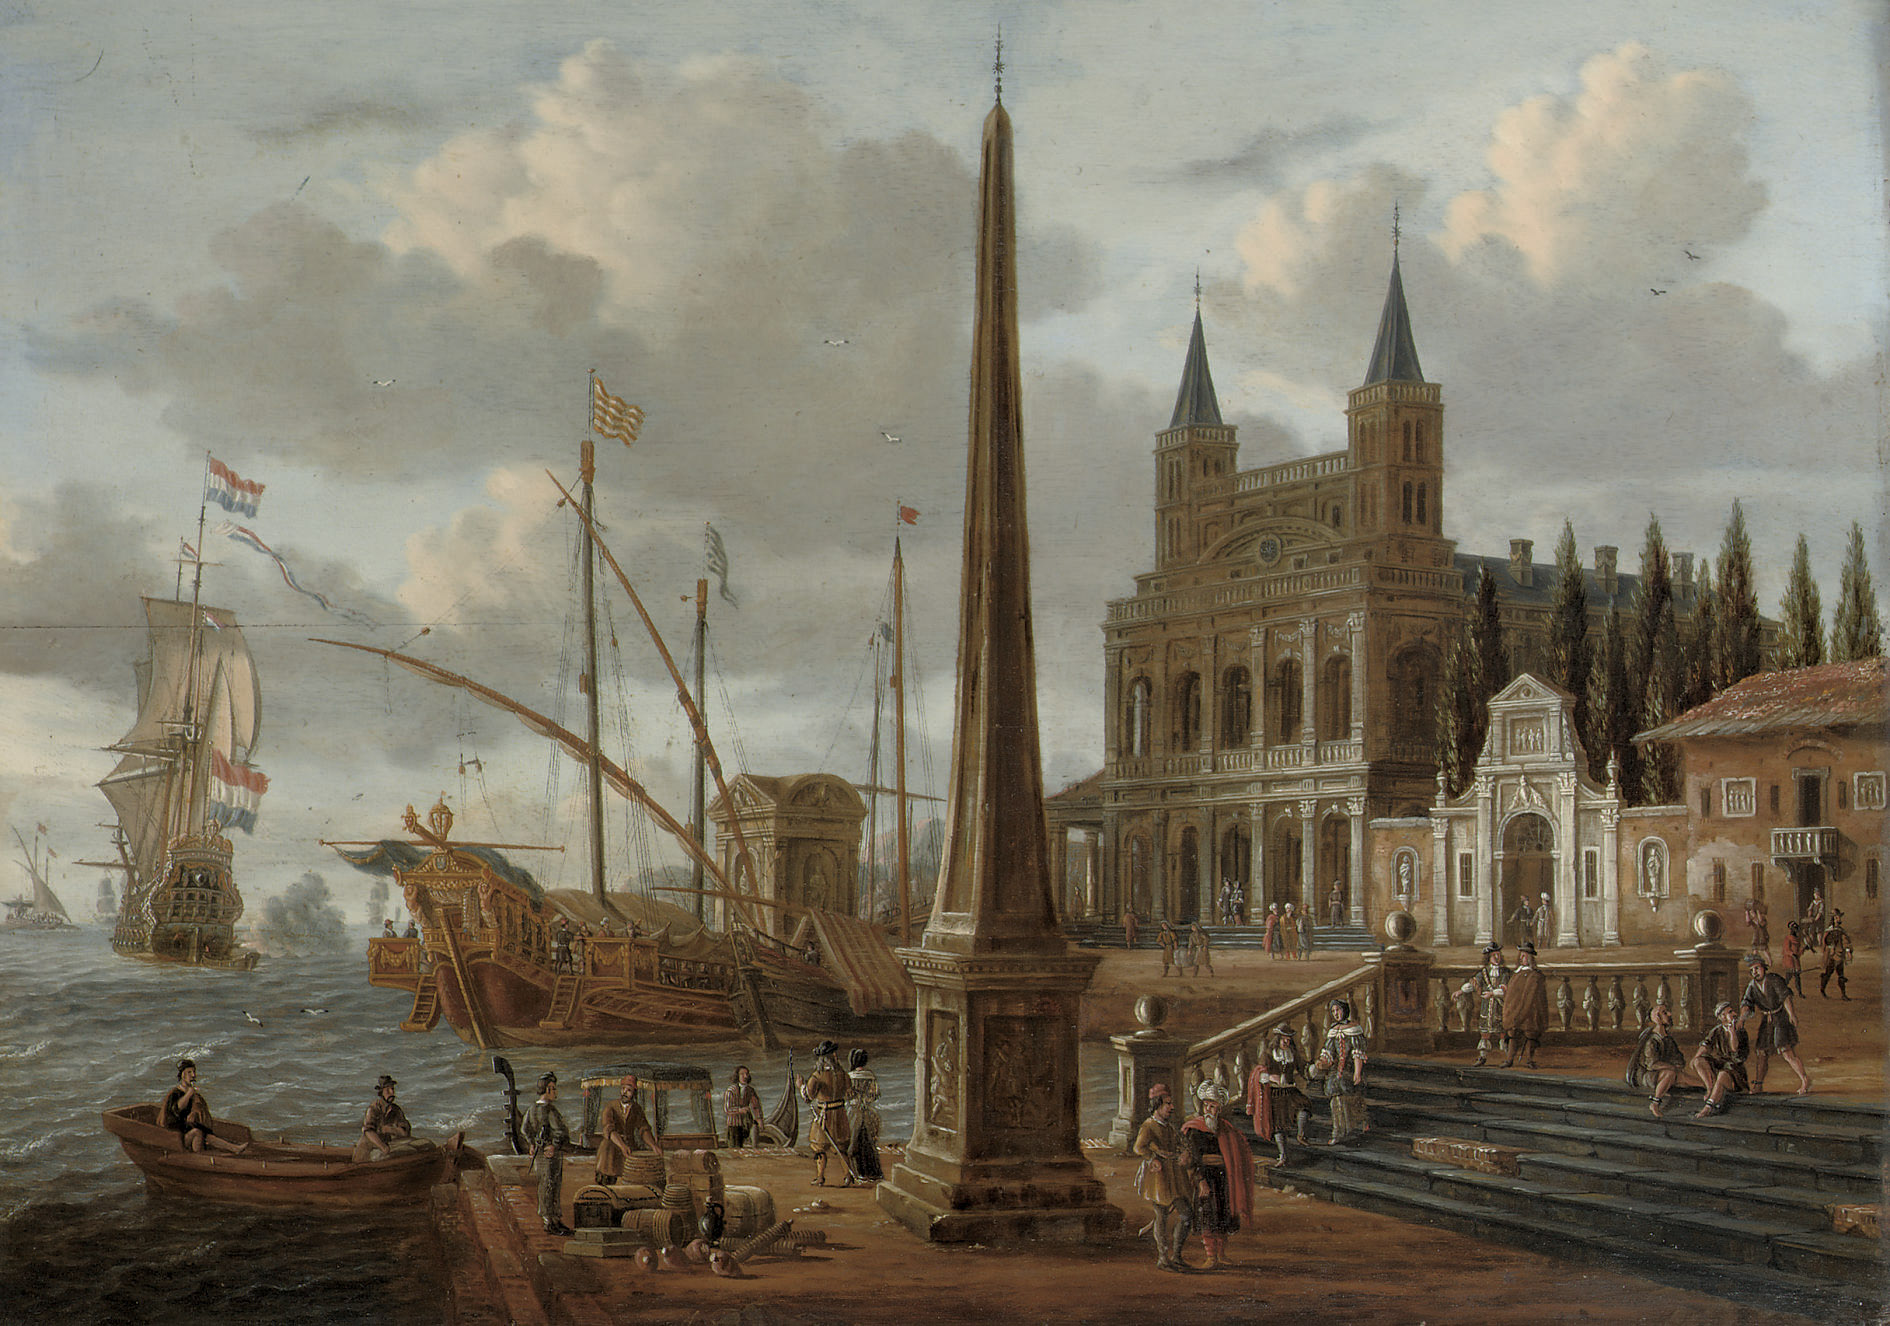 A meditteranean harbour scene with the facade of the Basilica di San Giovanni in Laterano